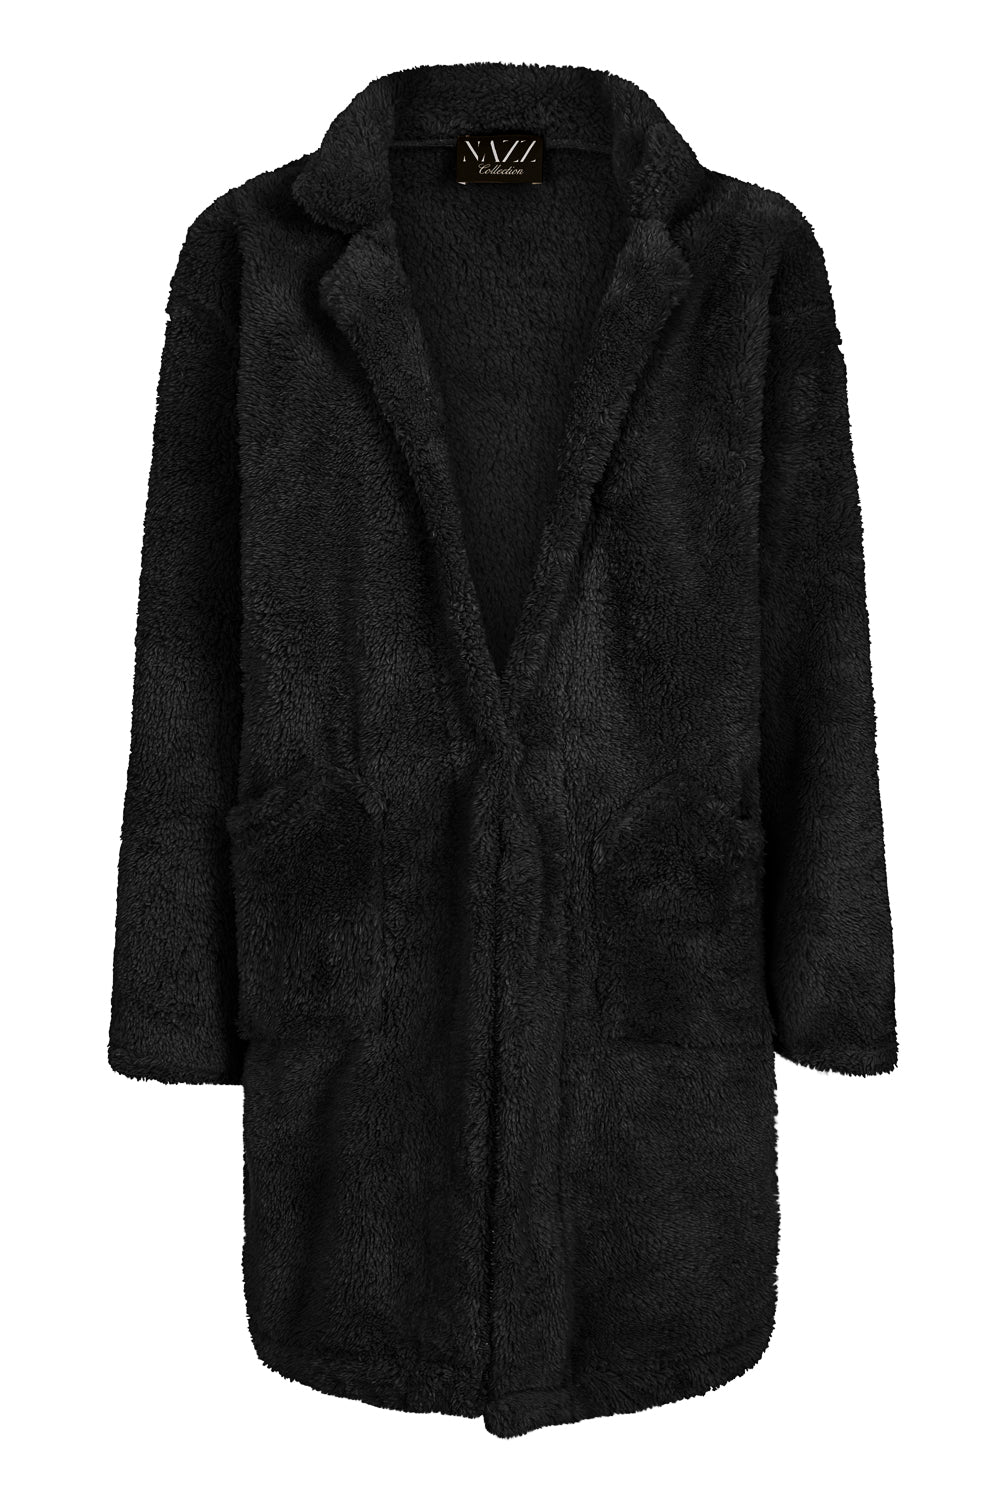 Neema Black Teddy Plush Fleece Cardigan Jacket